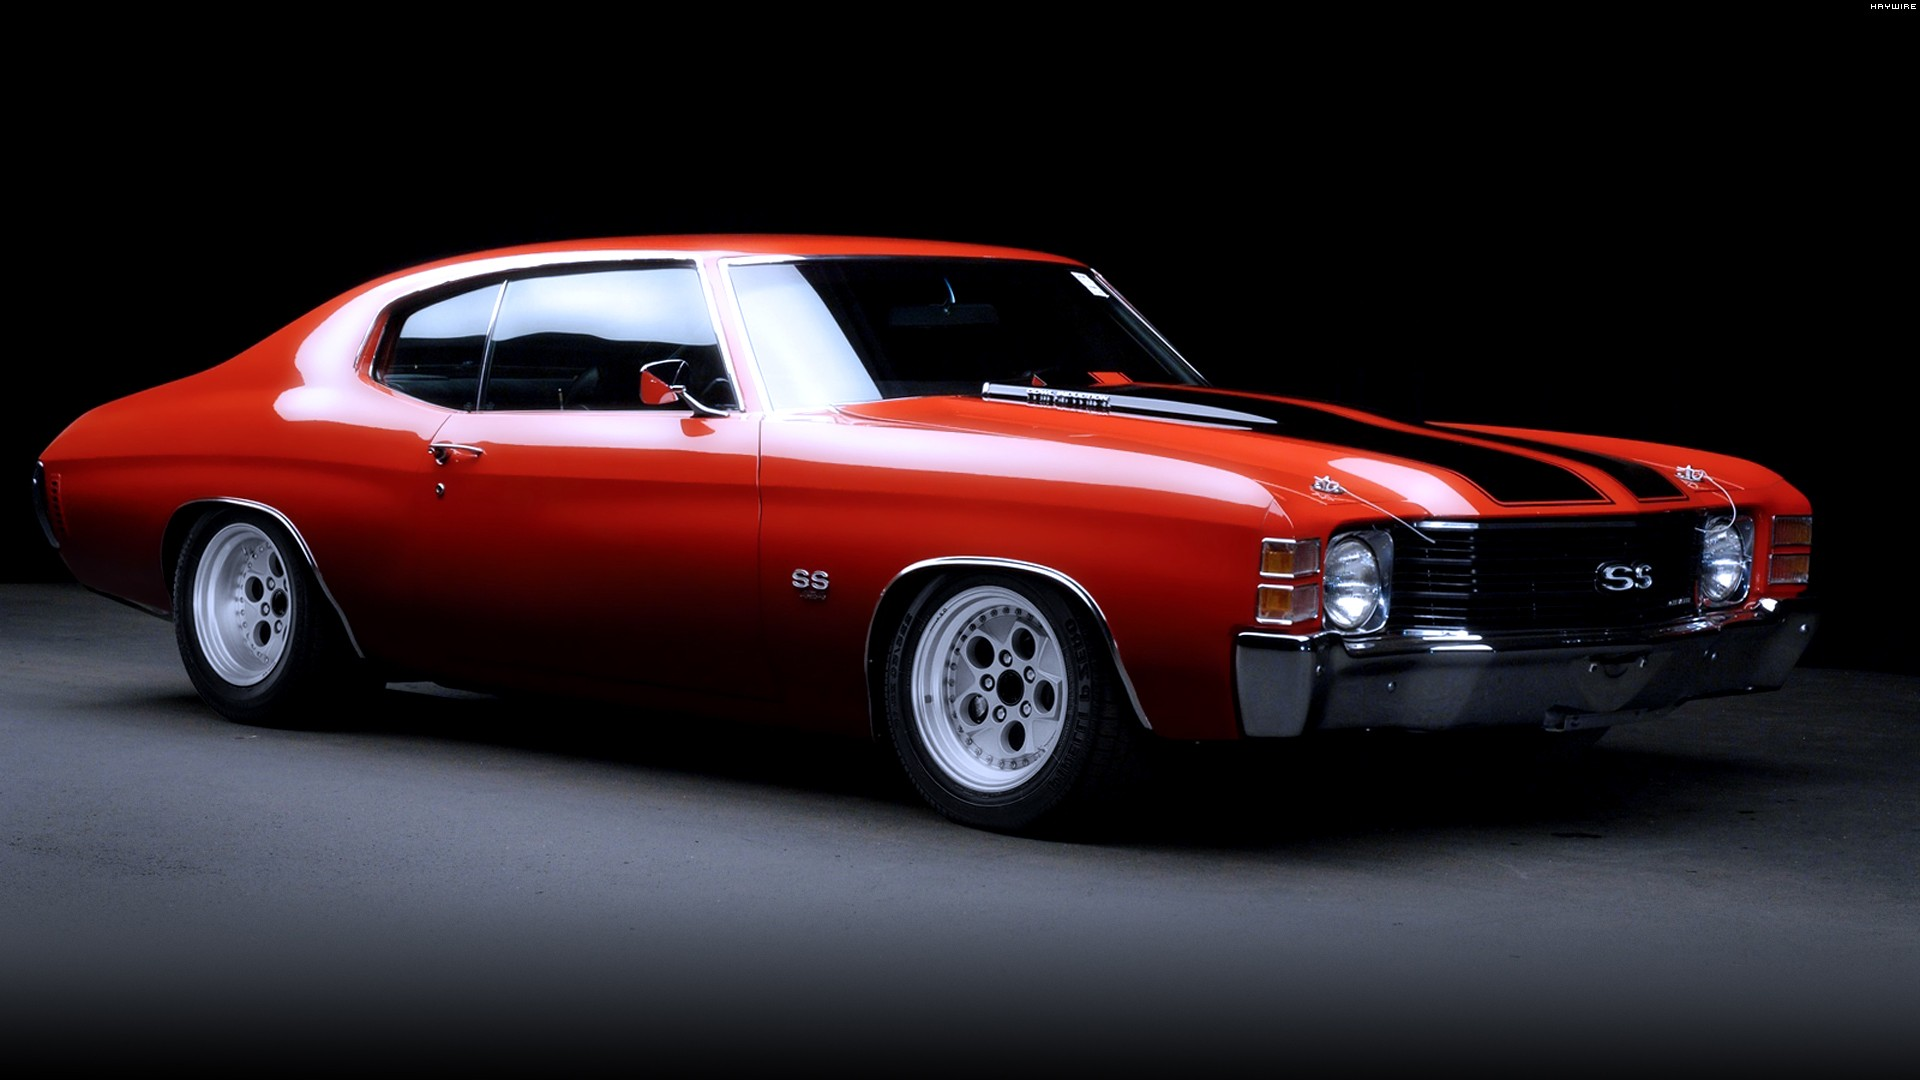 Cars Muscle Wallpaper 1920x1080 Cars, Muscle, Cars, DeviantART ...